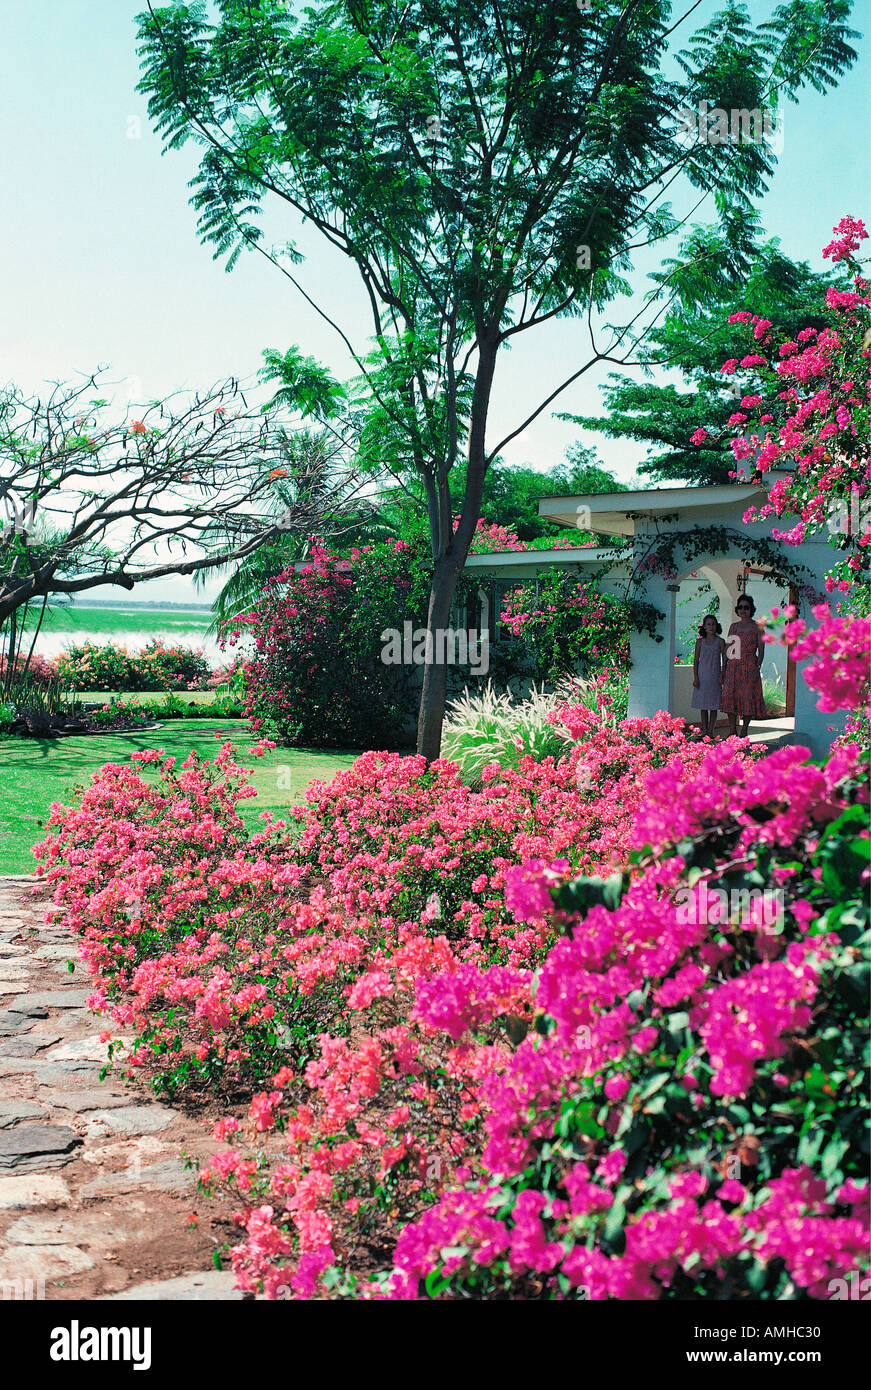 Bougainvillea bushes with red pink and mauve flowers in the grounds of Lake Baringo Club - Stock Image